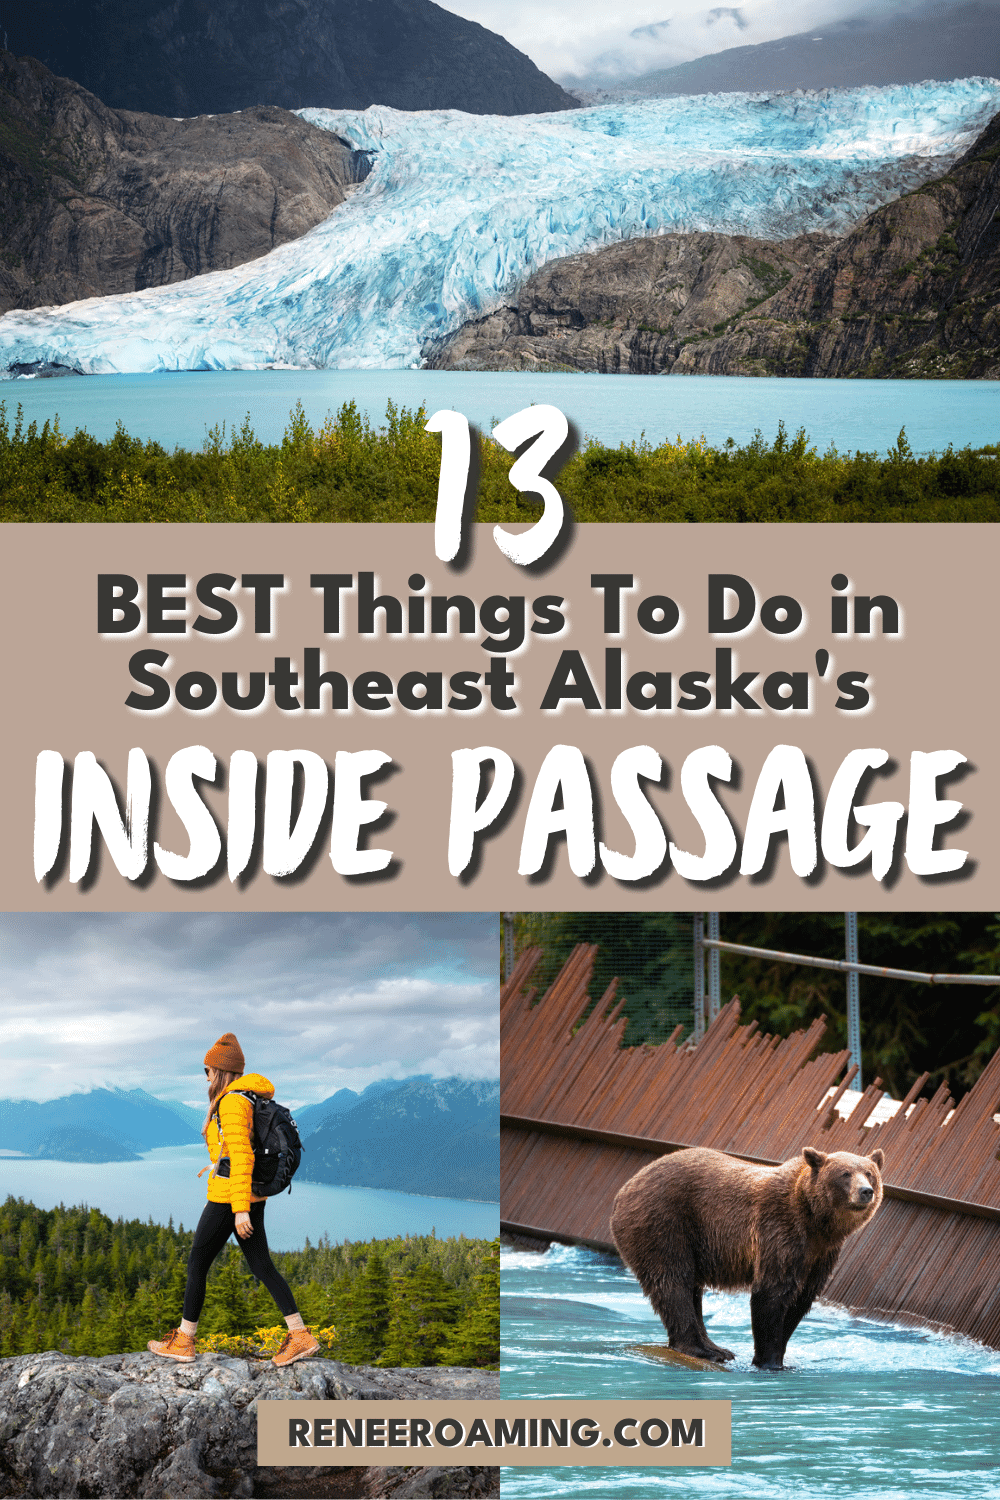 13 Incredible Things To Do In The Inside Passage Of Southeast Alaska